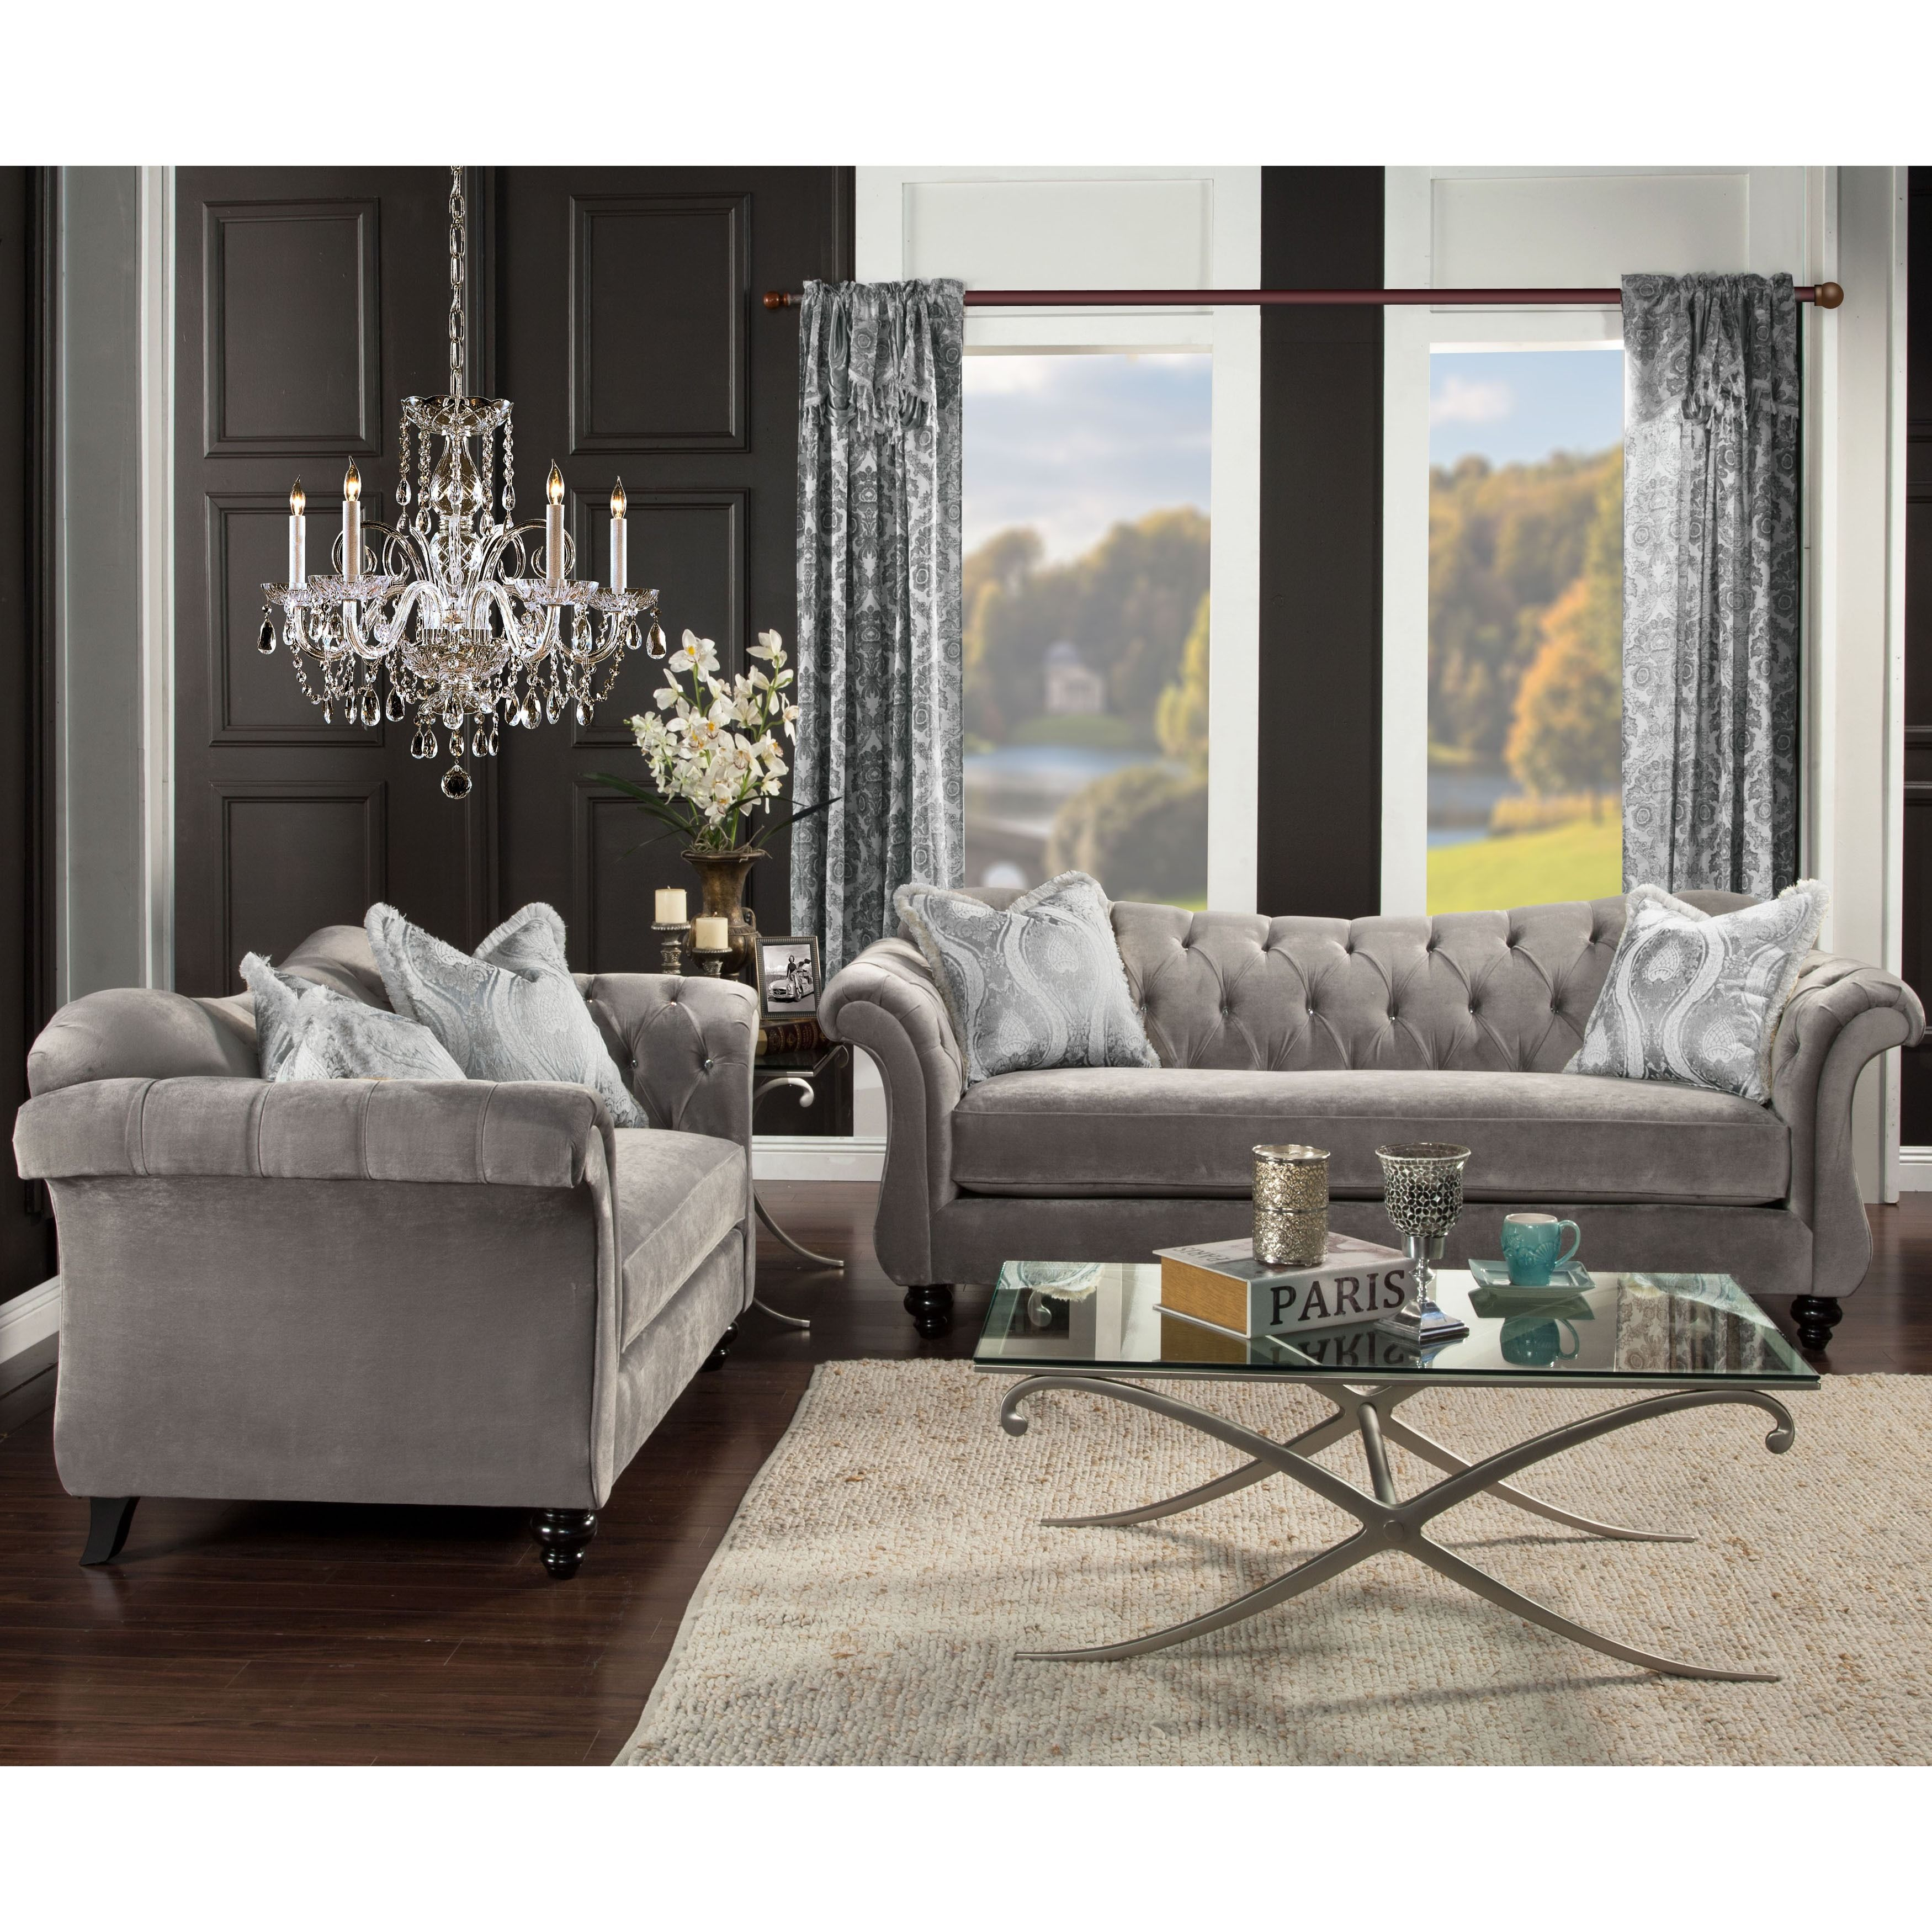 Furniture Of America Agatha 2 Piece Tufted Velvet And Hardwood Sofa Loveseat Set Dolphin Grey